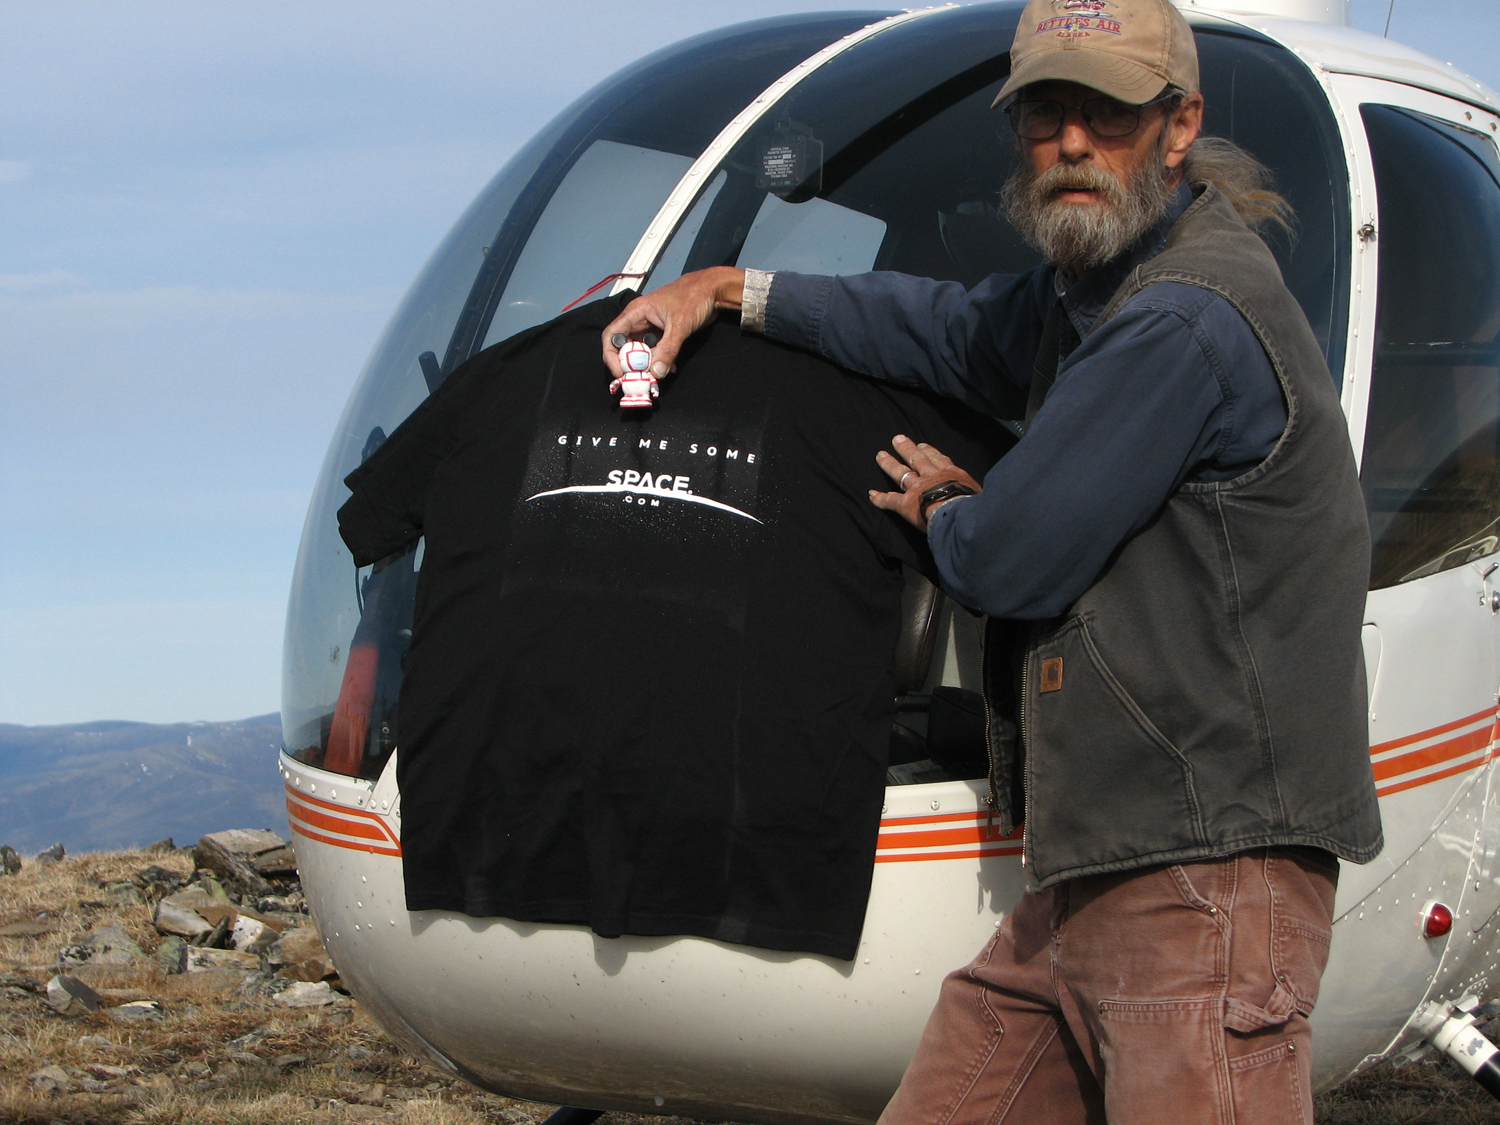 Balloon-Launched SPACE.com T-Shirt Found in Alaskan Wilderness